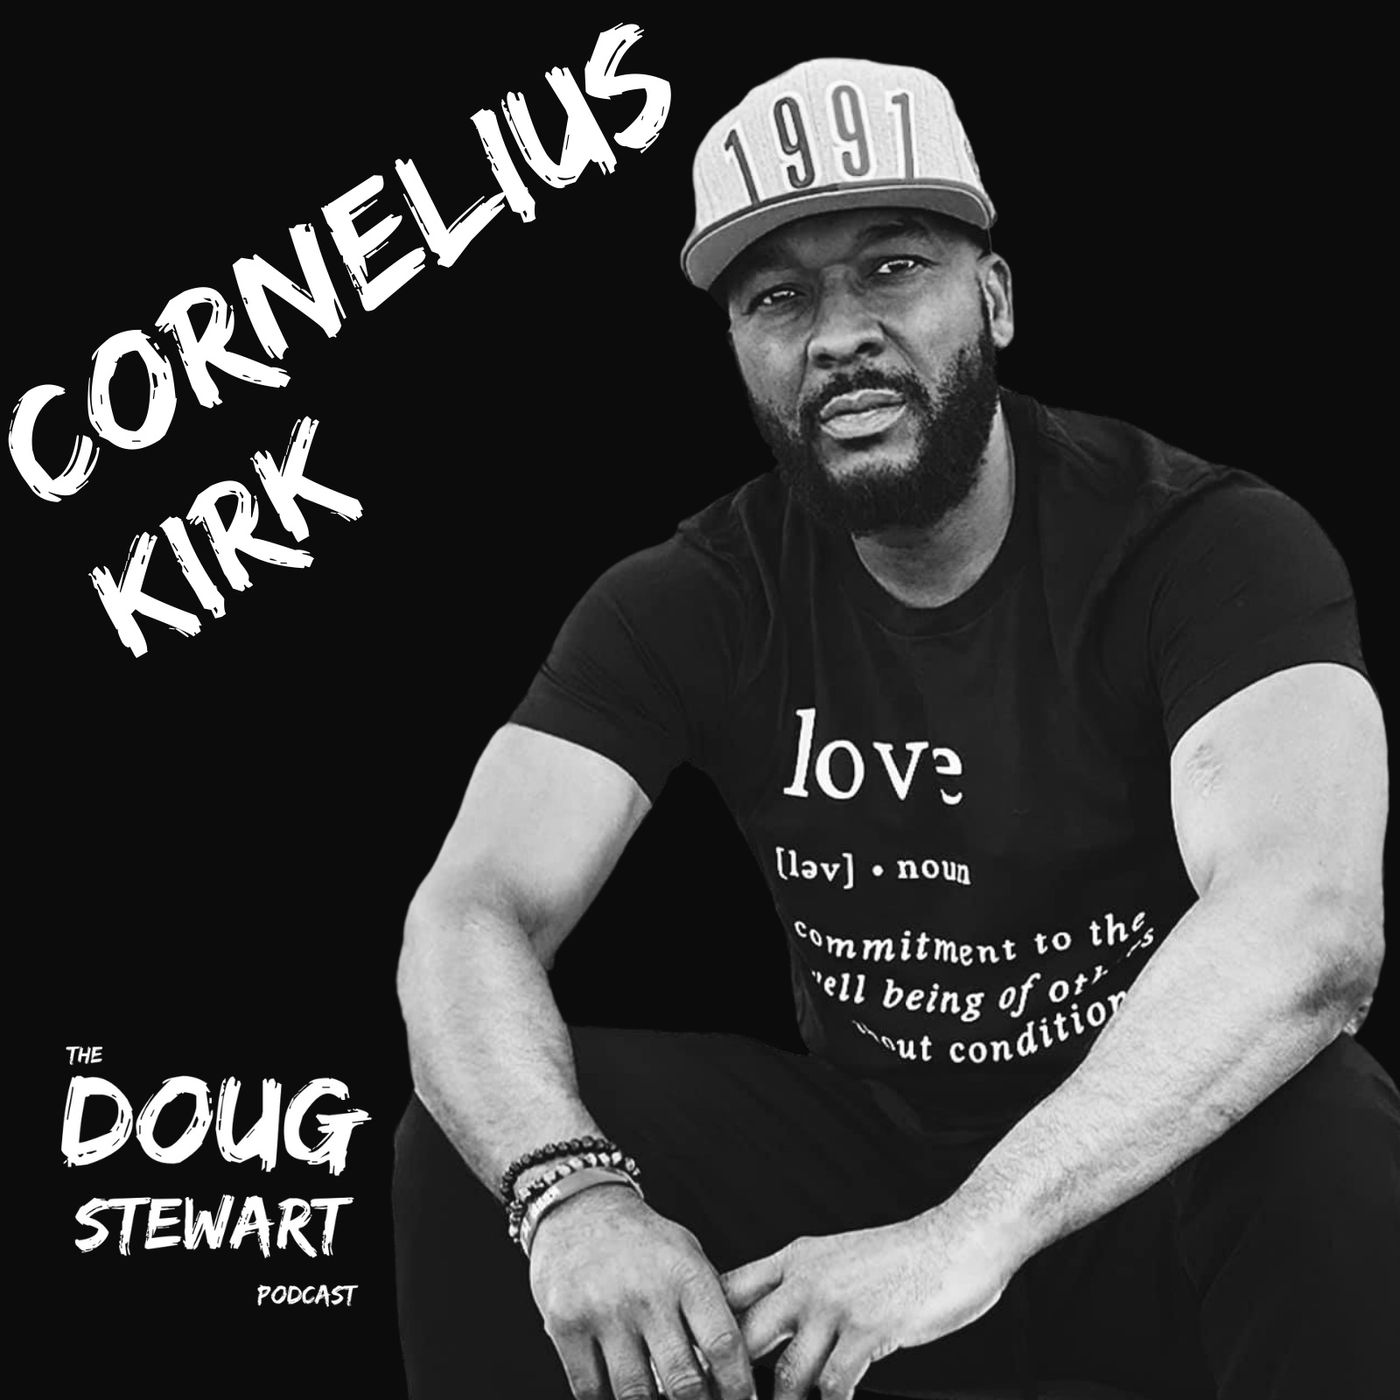 Session 1: Cornelius Kirk - How To Be An Advocate